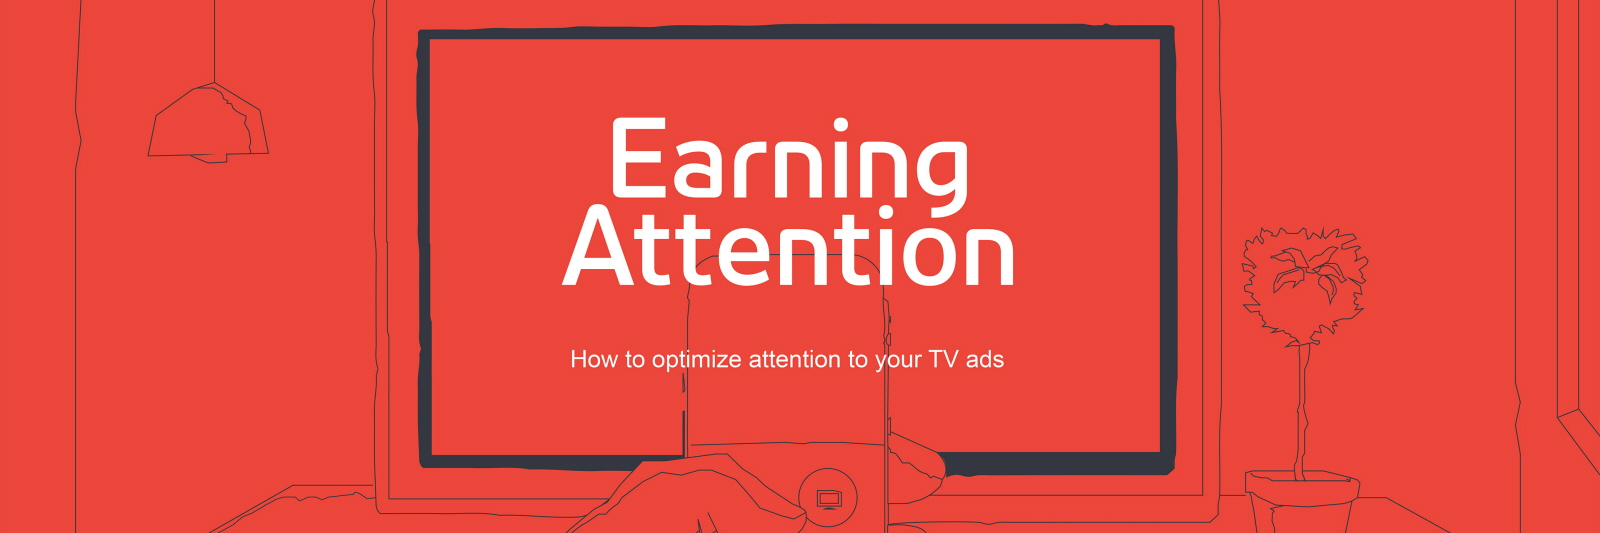 How to optimise your TV ads with eye tracking